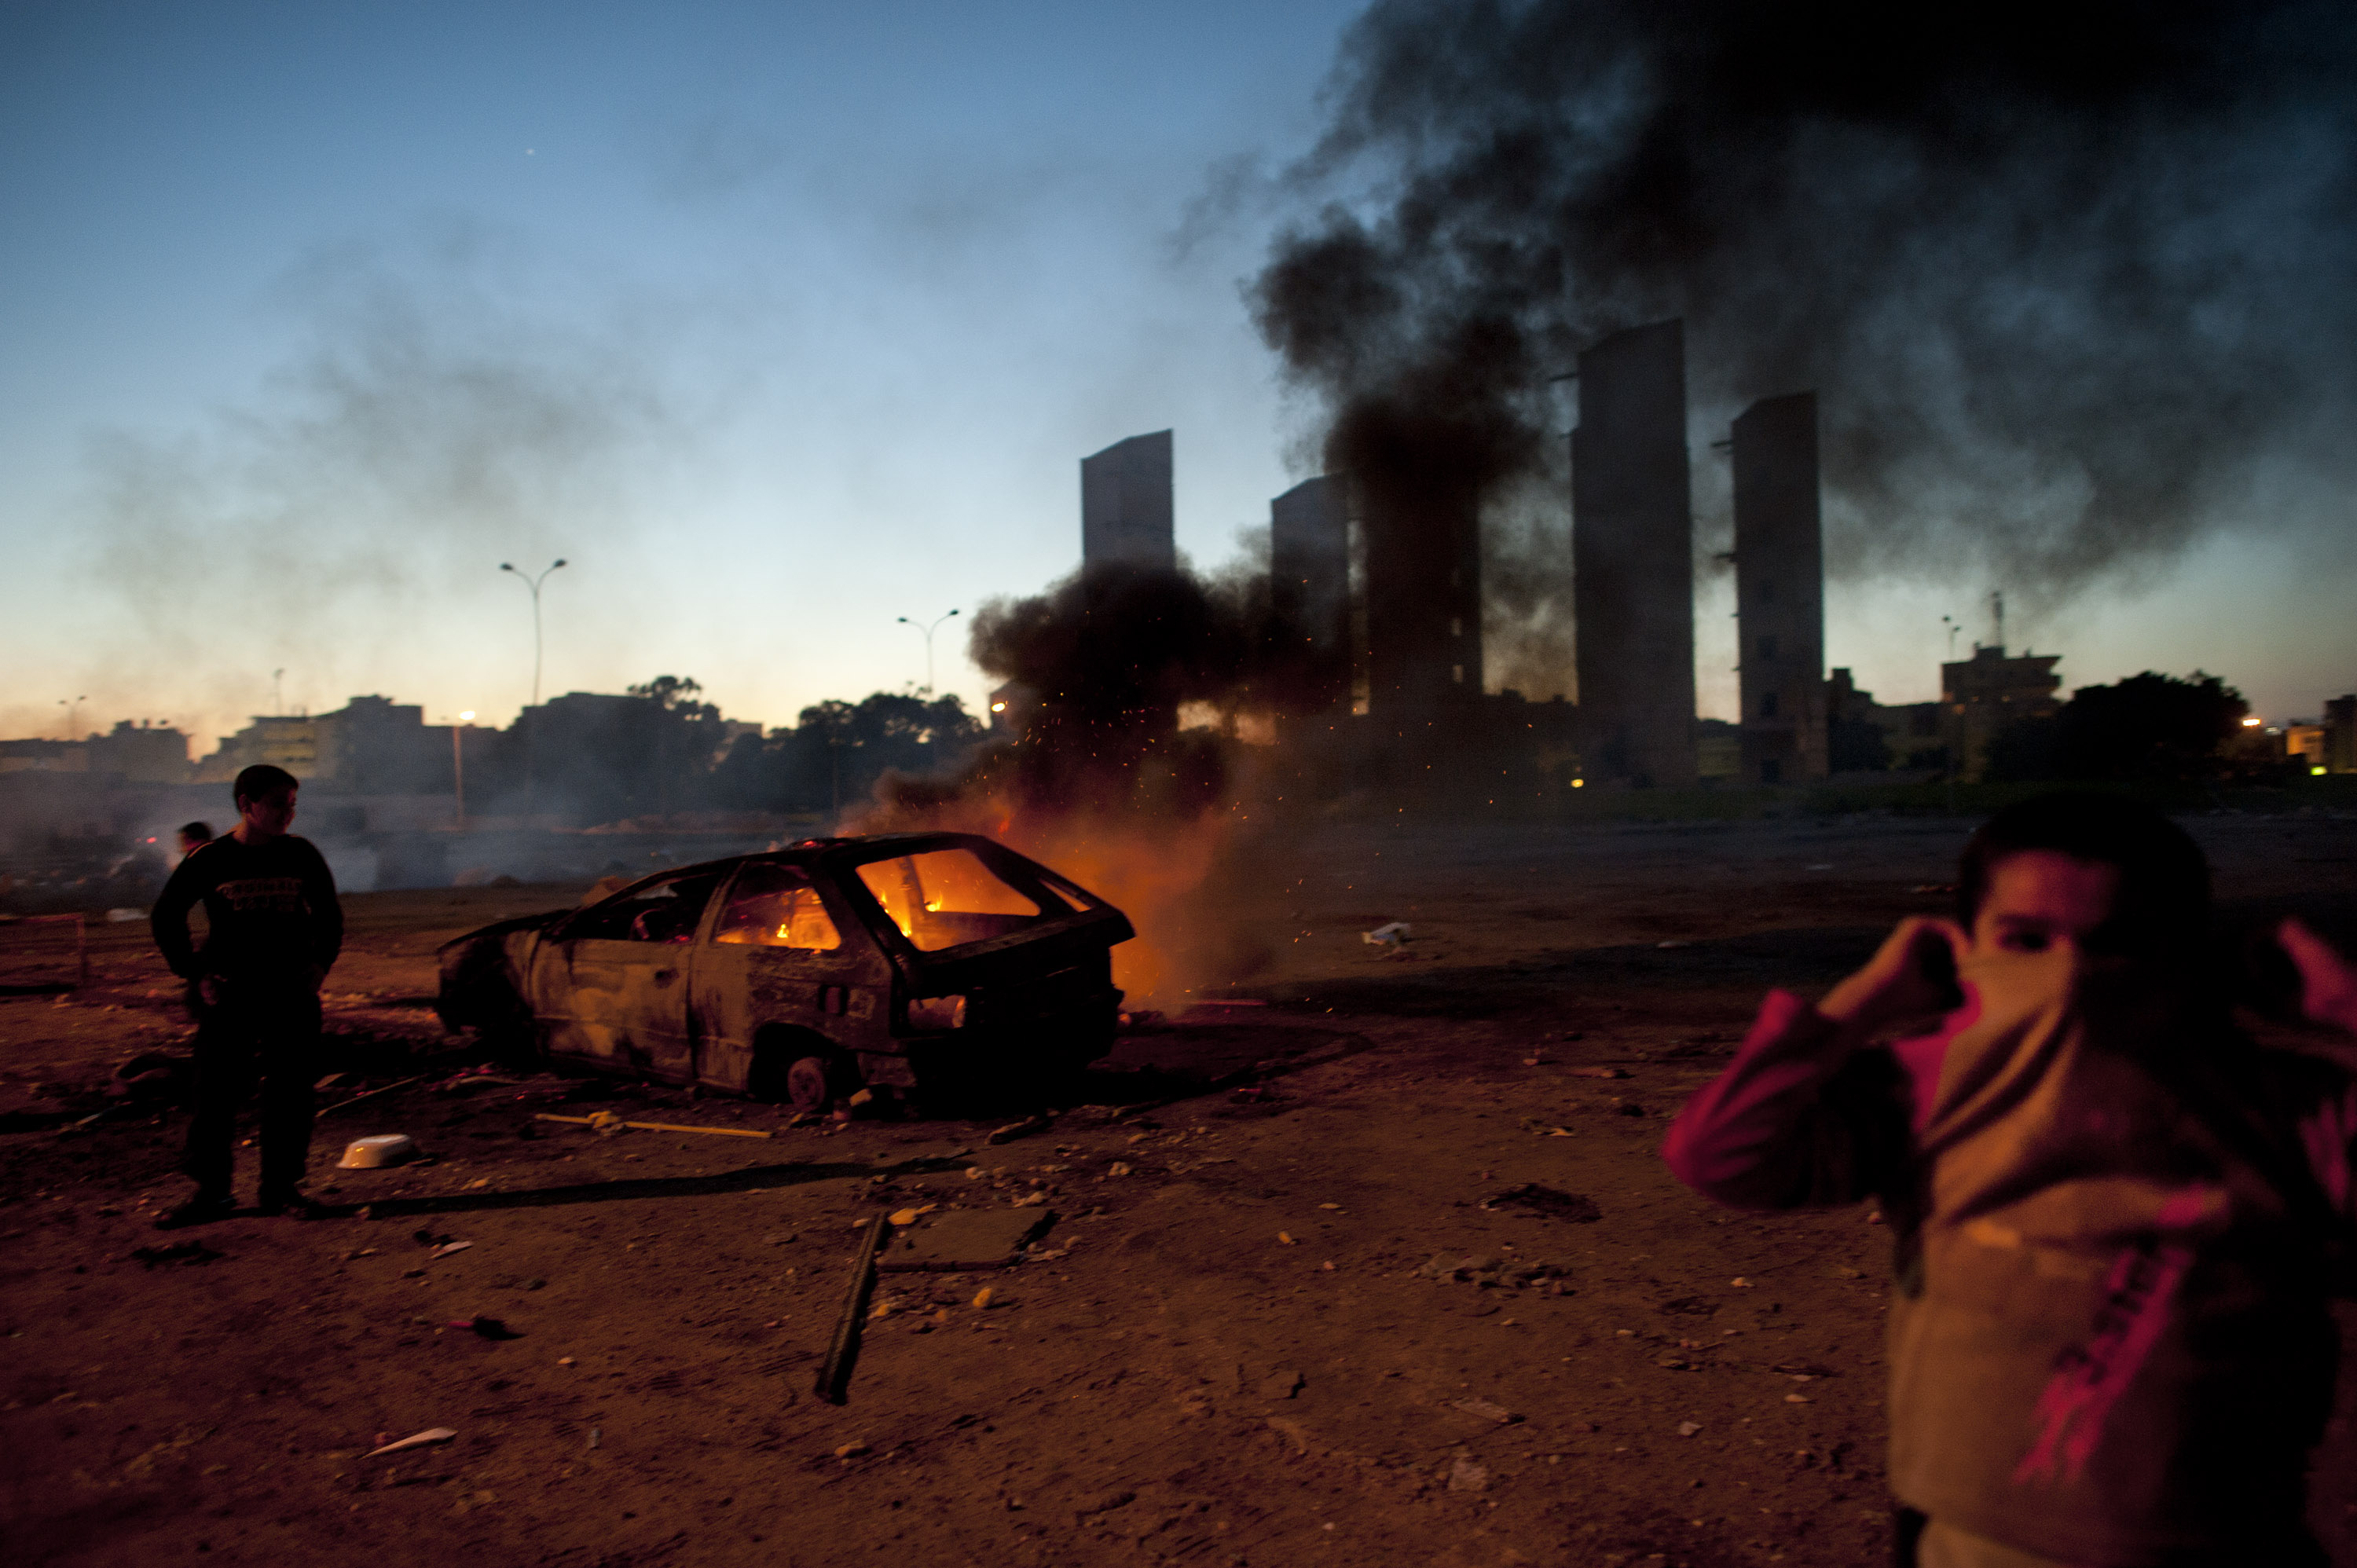 Kids play around a burning car in a residential neighborhood in Benghazi, in Eastern Libya, February 28, 2011. Dangerous confrontations have been going on between opposition forces and those loyal to Col. Qaddafi across Libya.